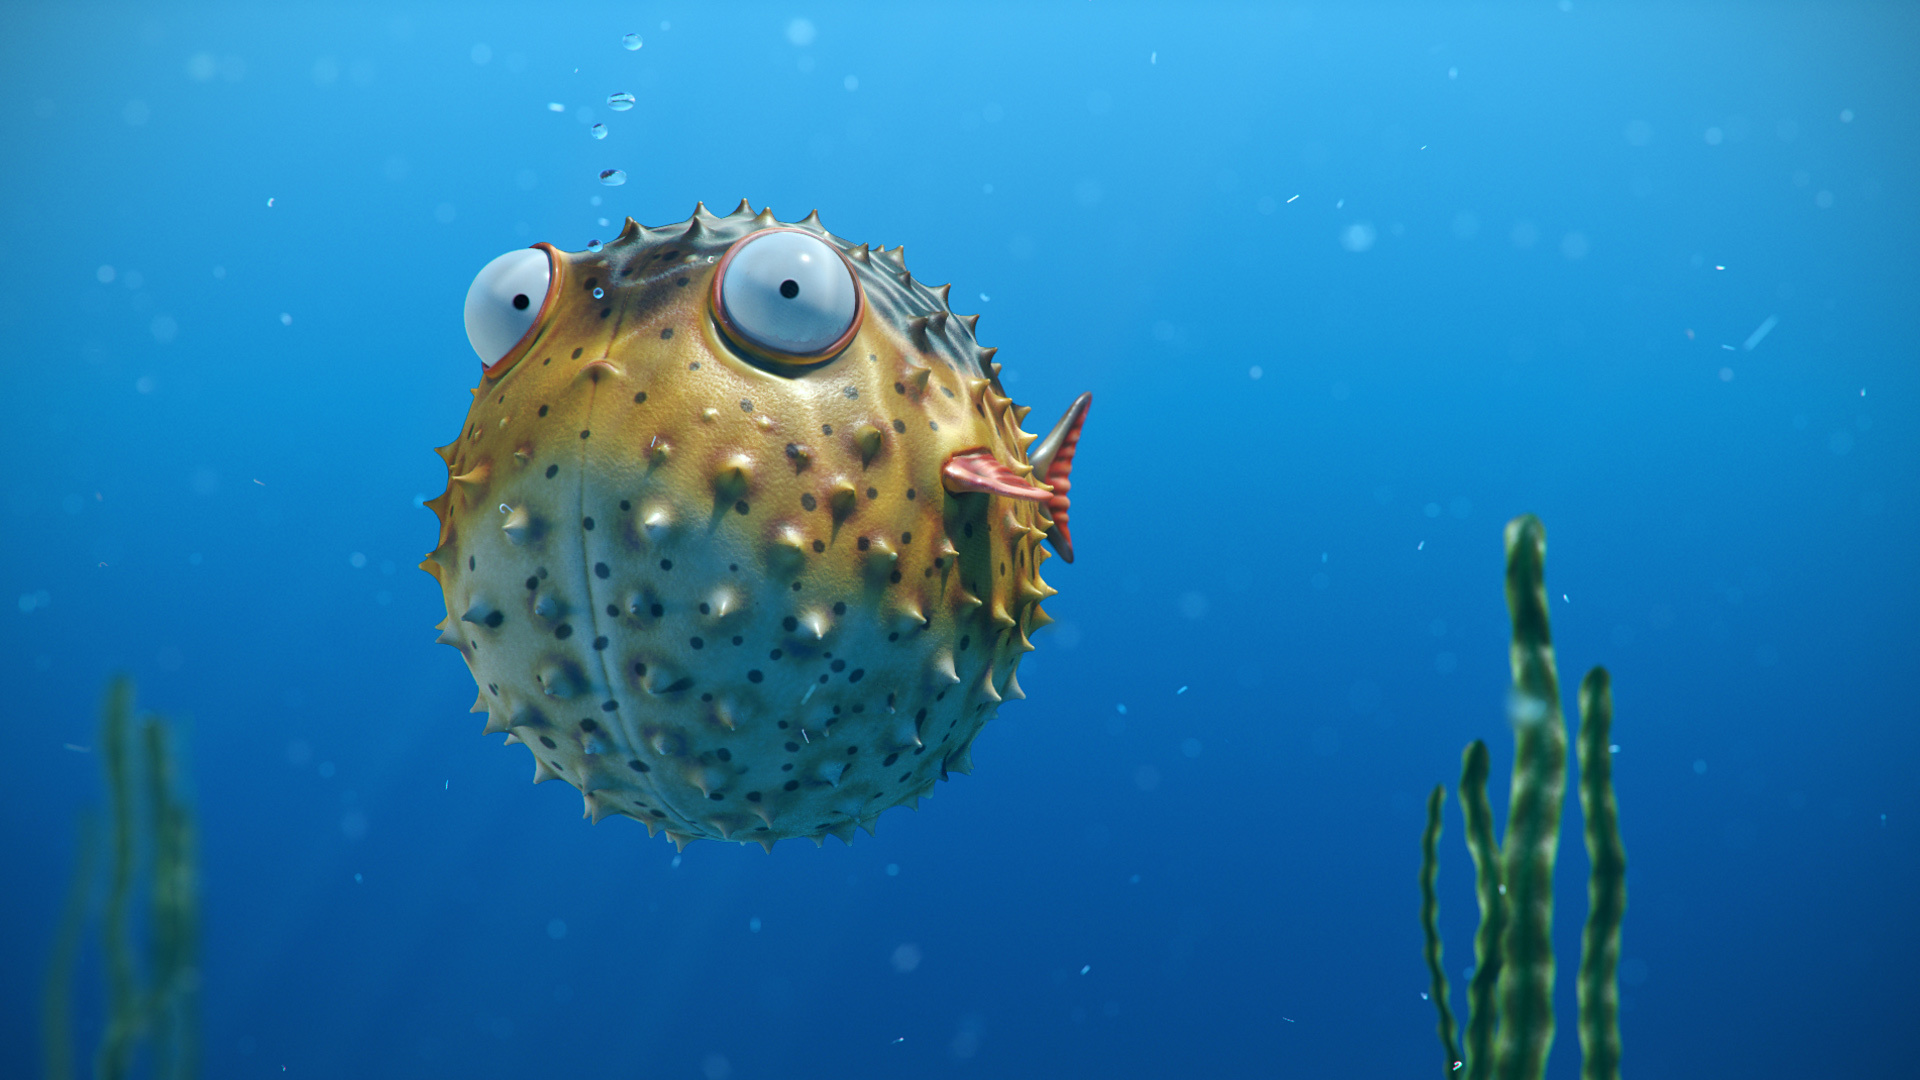 render puffer fish art bubbles funny ocean blue hd wallpaper 1920x1080